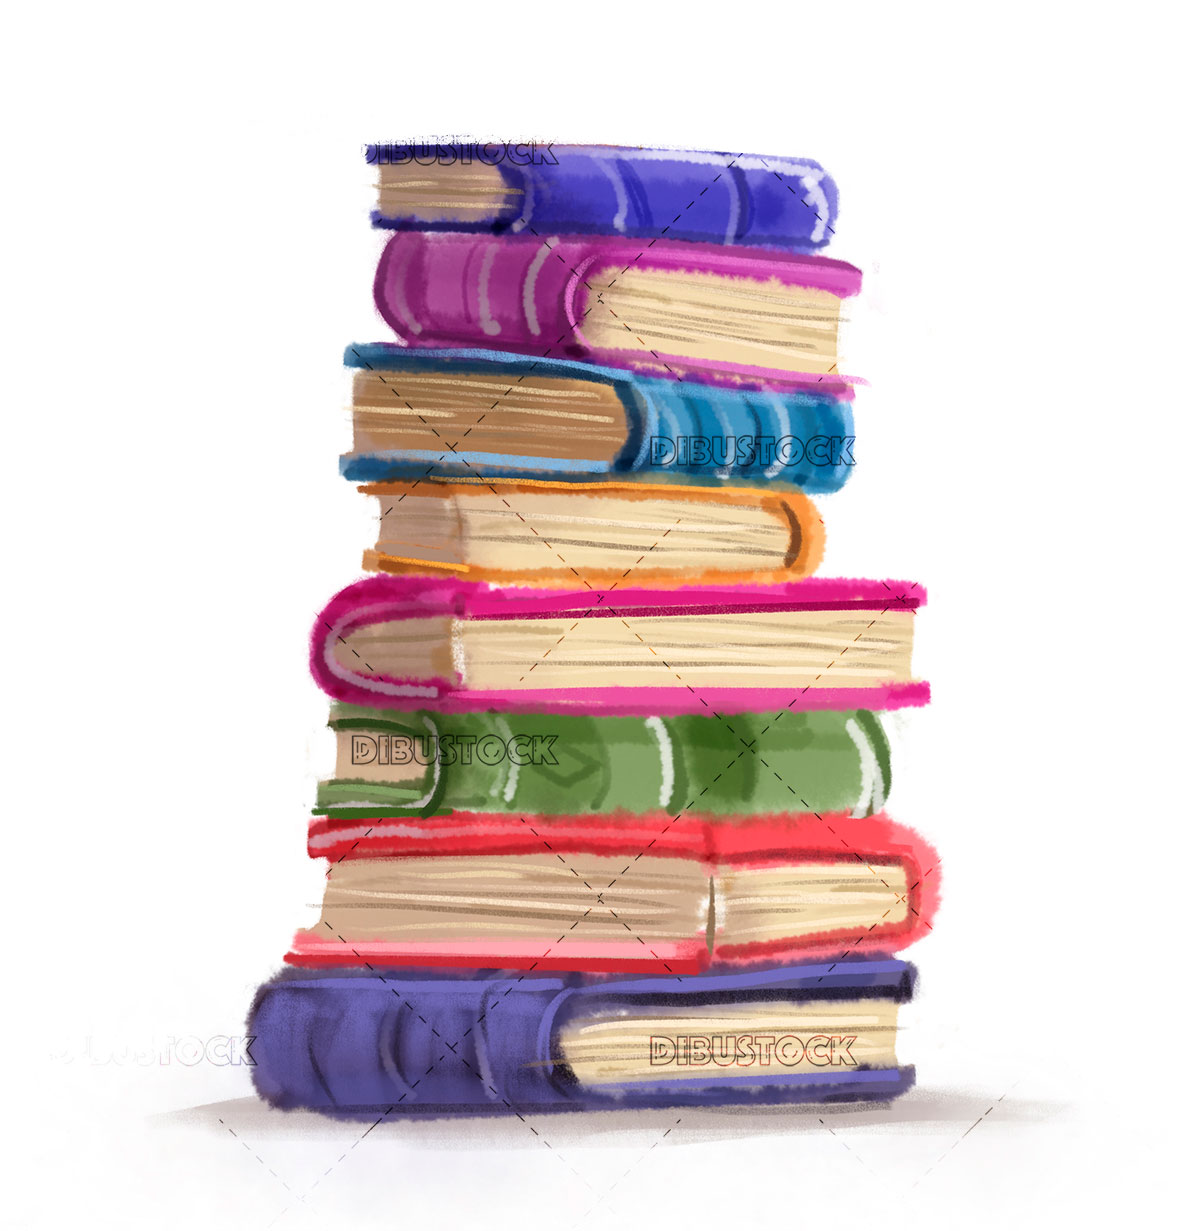 Colored books stacked